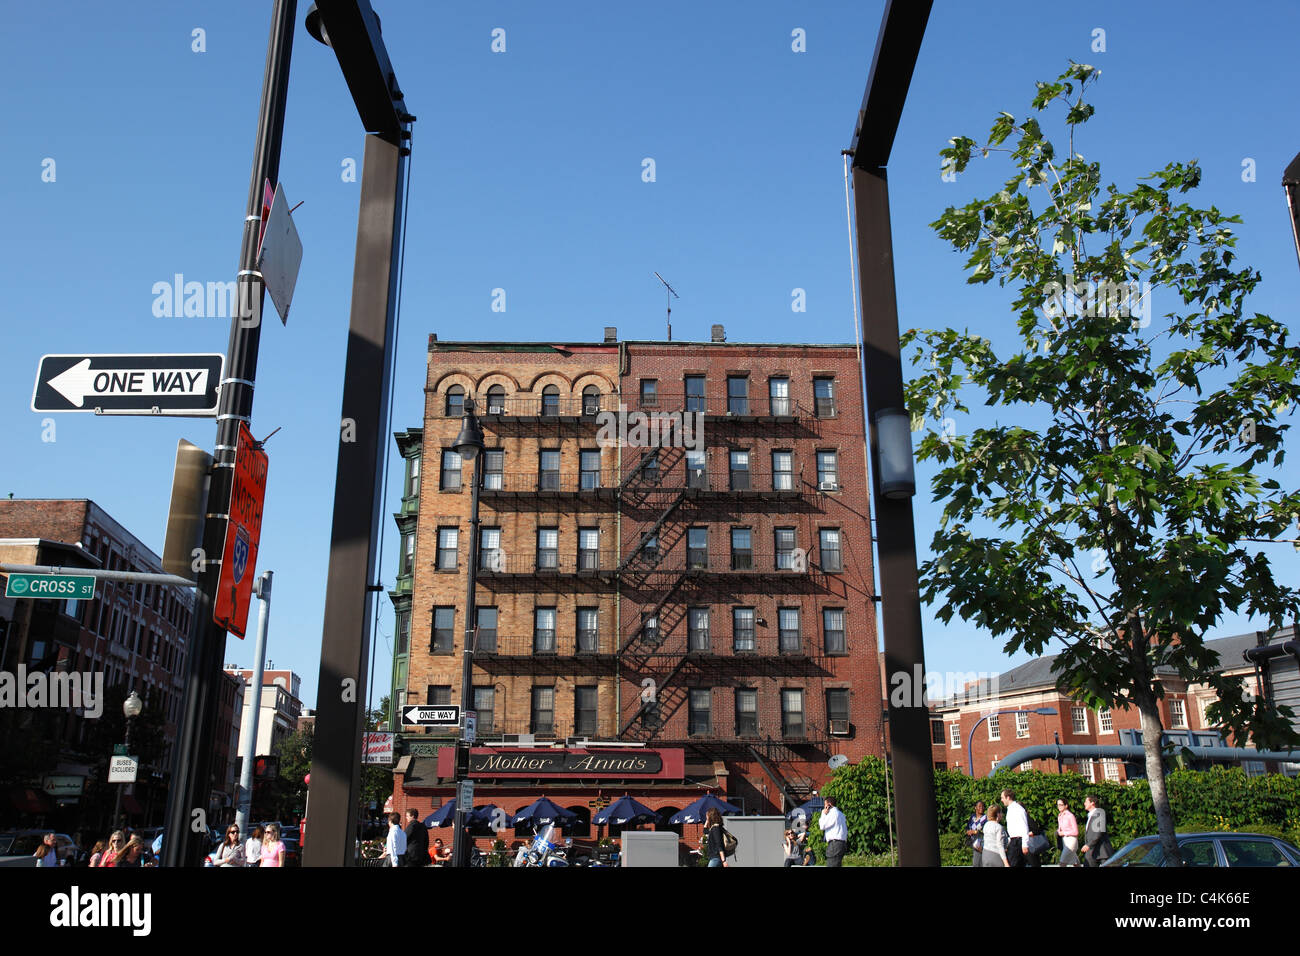 North End street scene, Boston, Massachusetts - Stock Image